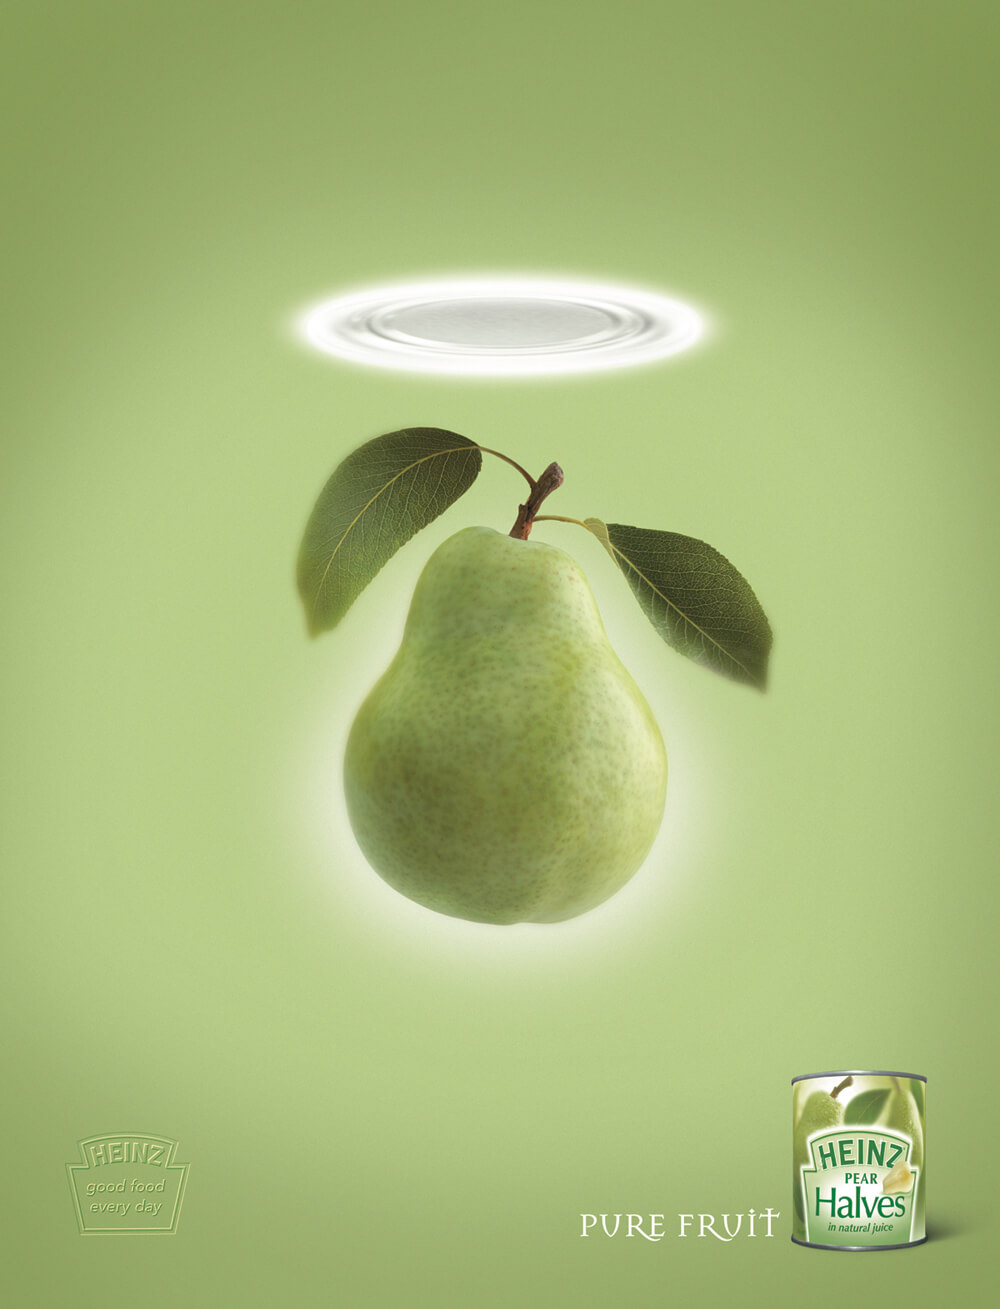 Heinz Pure Fruit Pear Slices